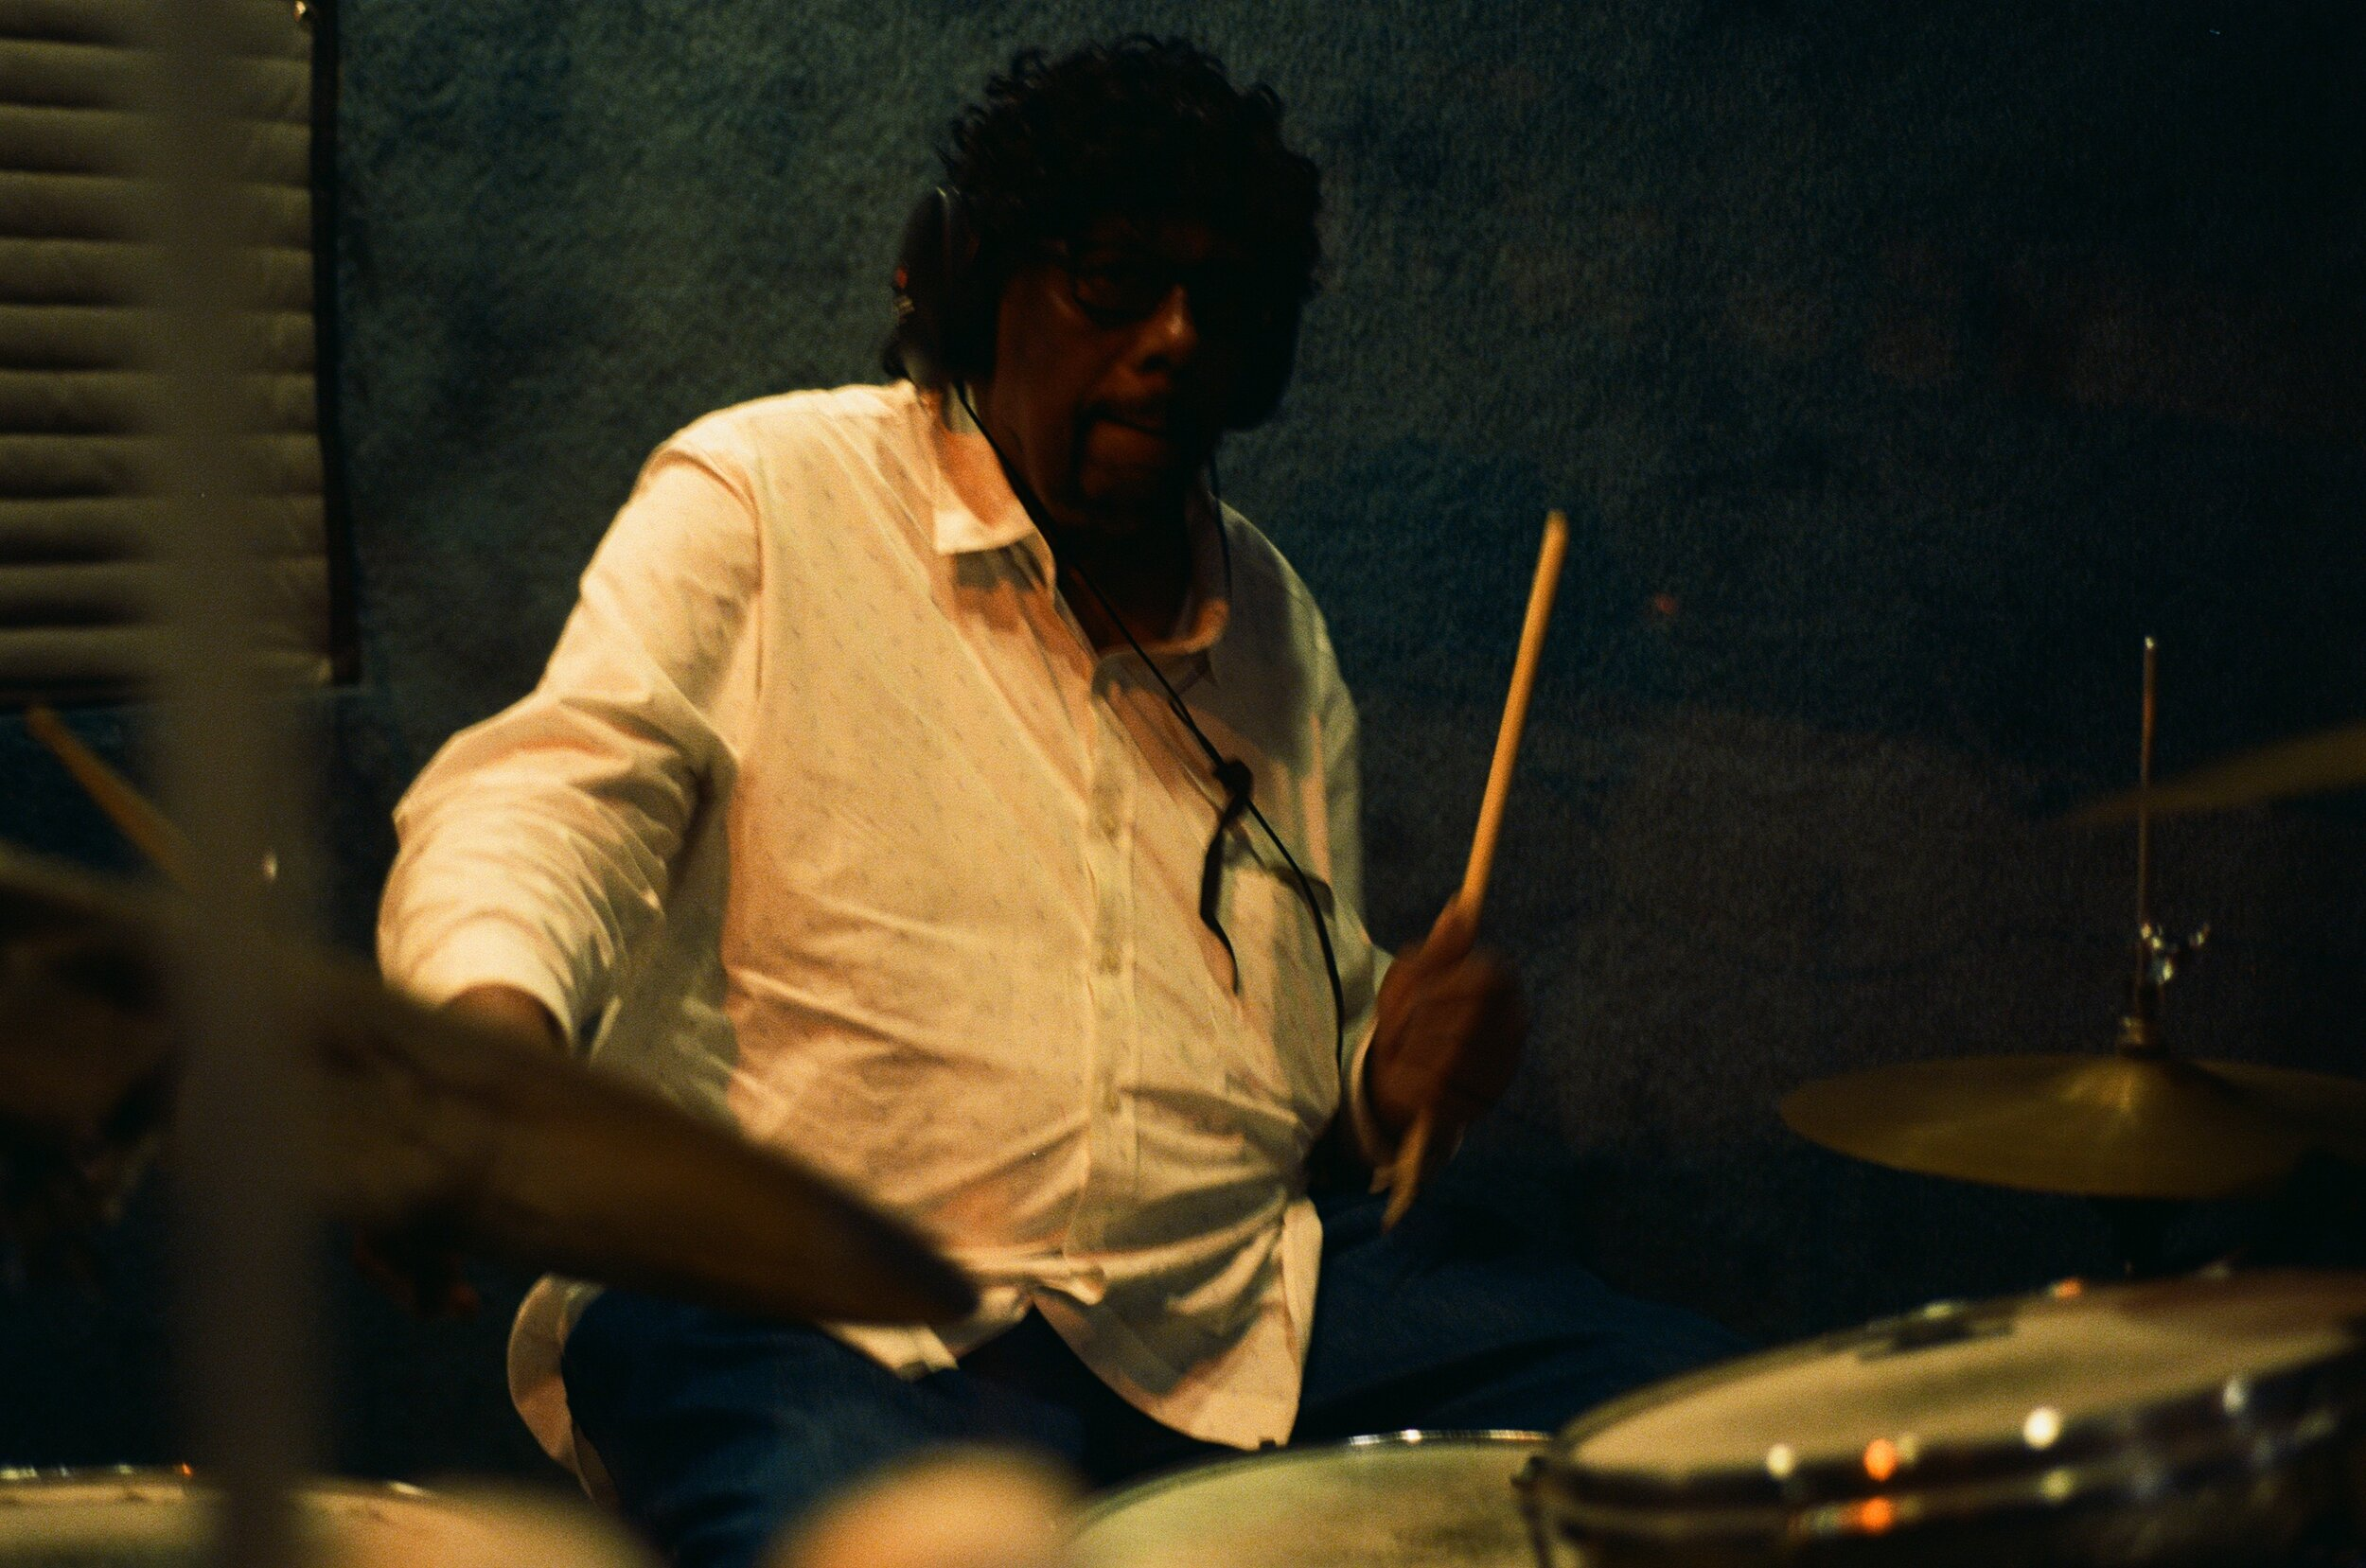 Drum legend James Gadson (Photo by Devin O'Brien)